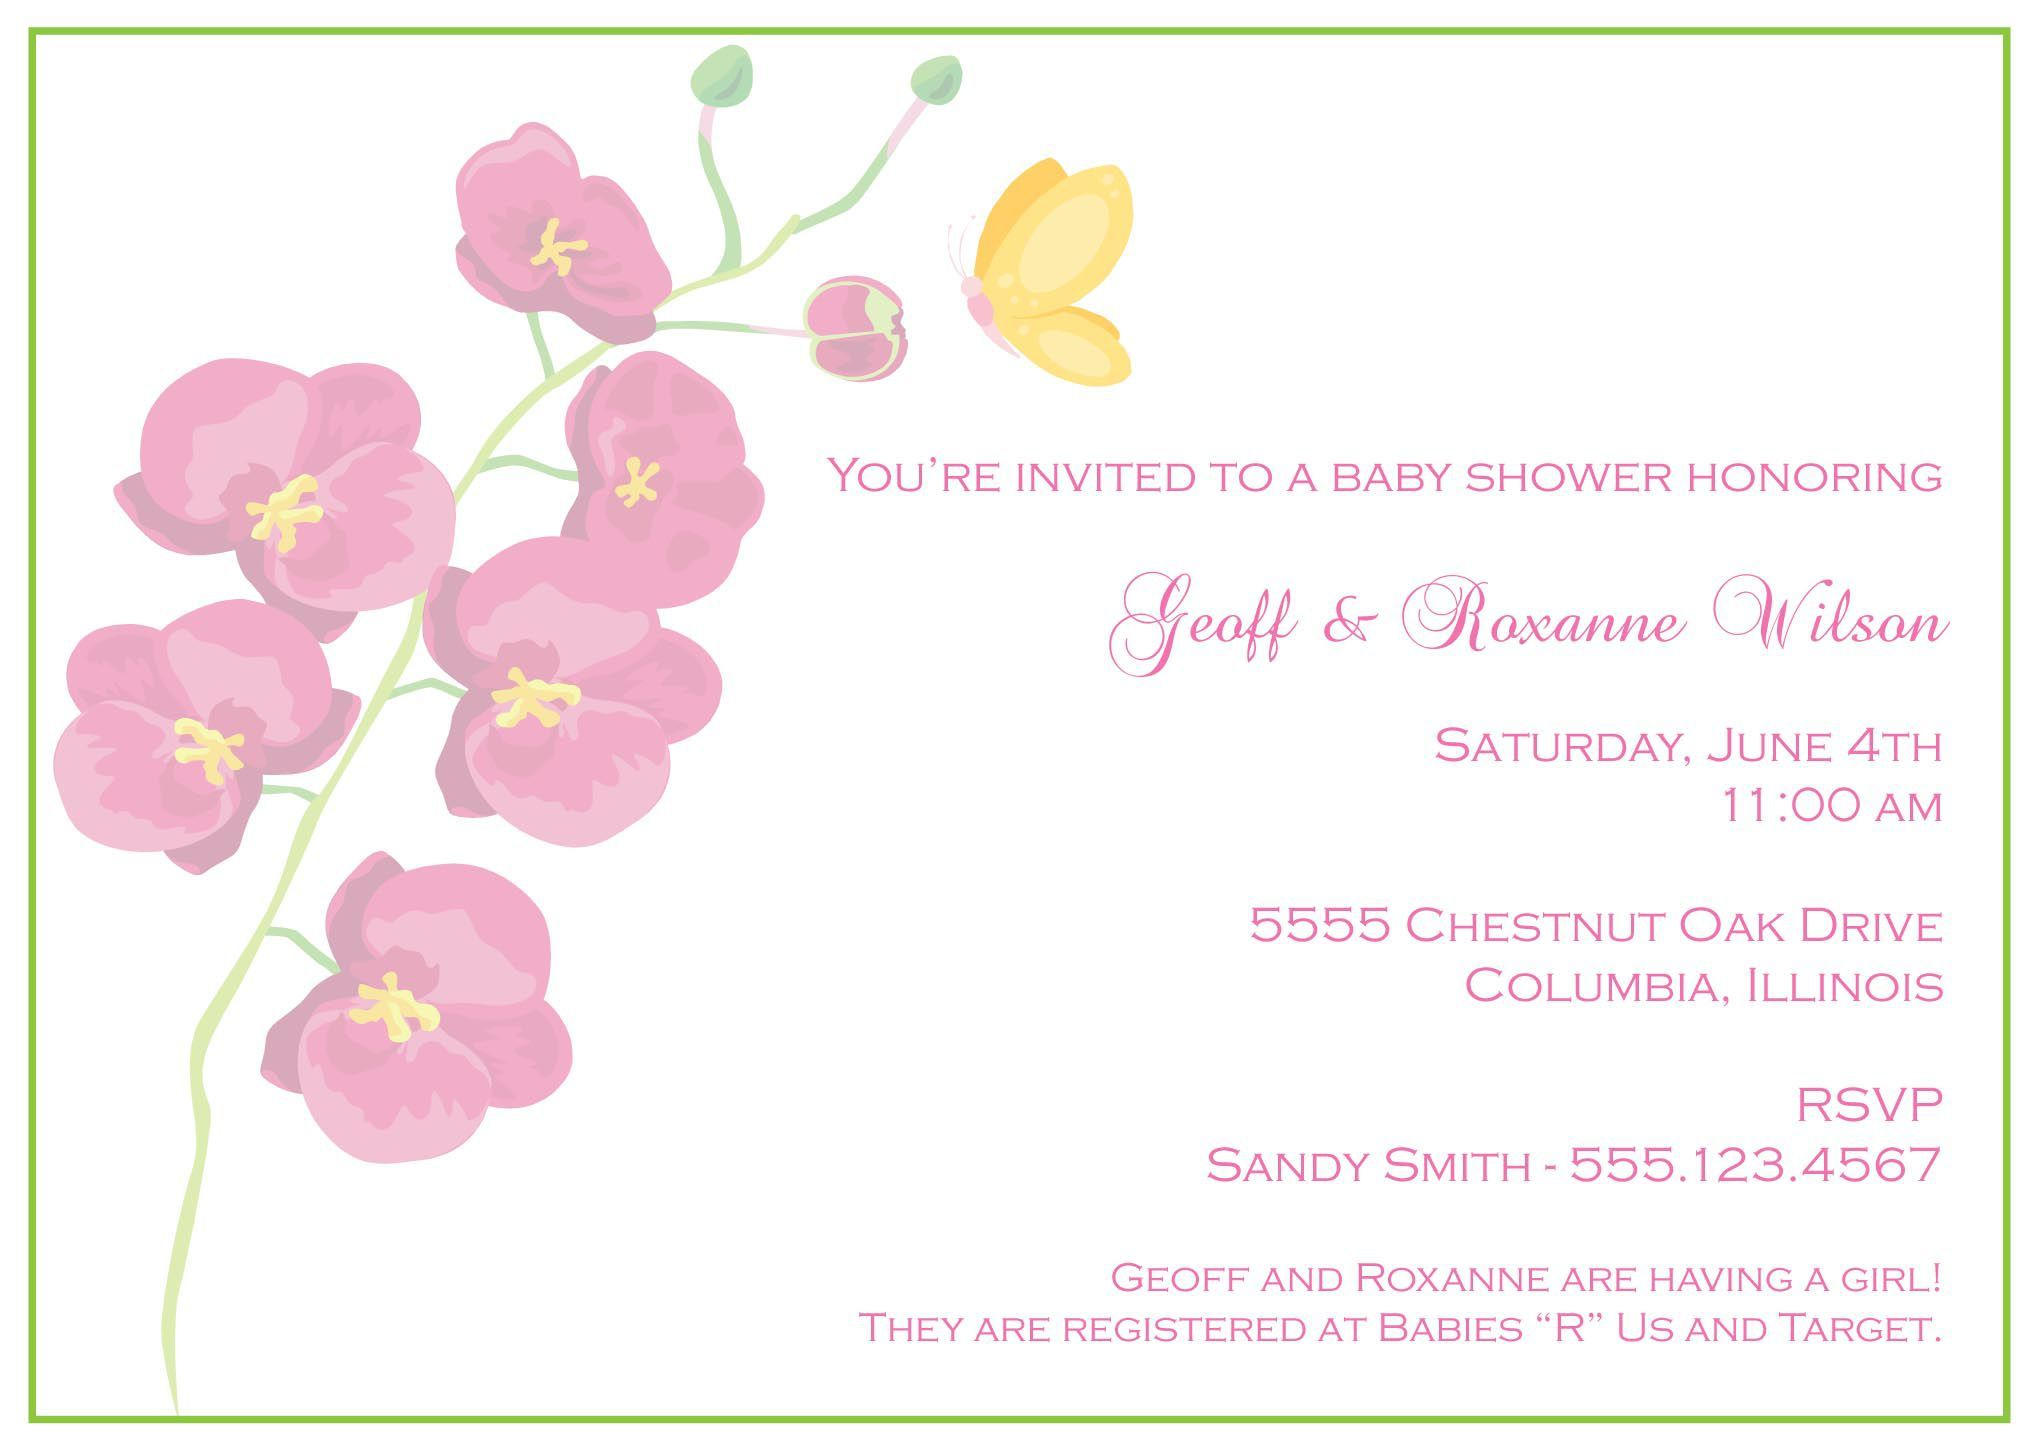 invitation cards wedding wording | Invitations card template ...